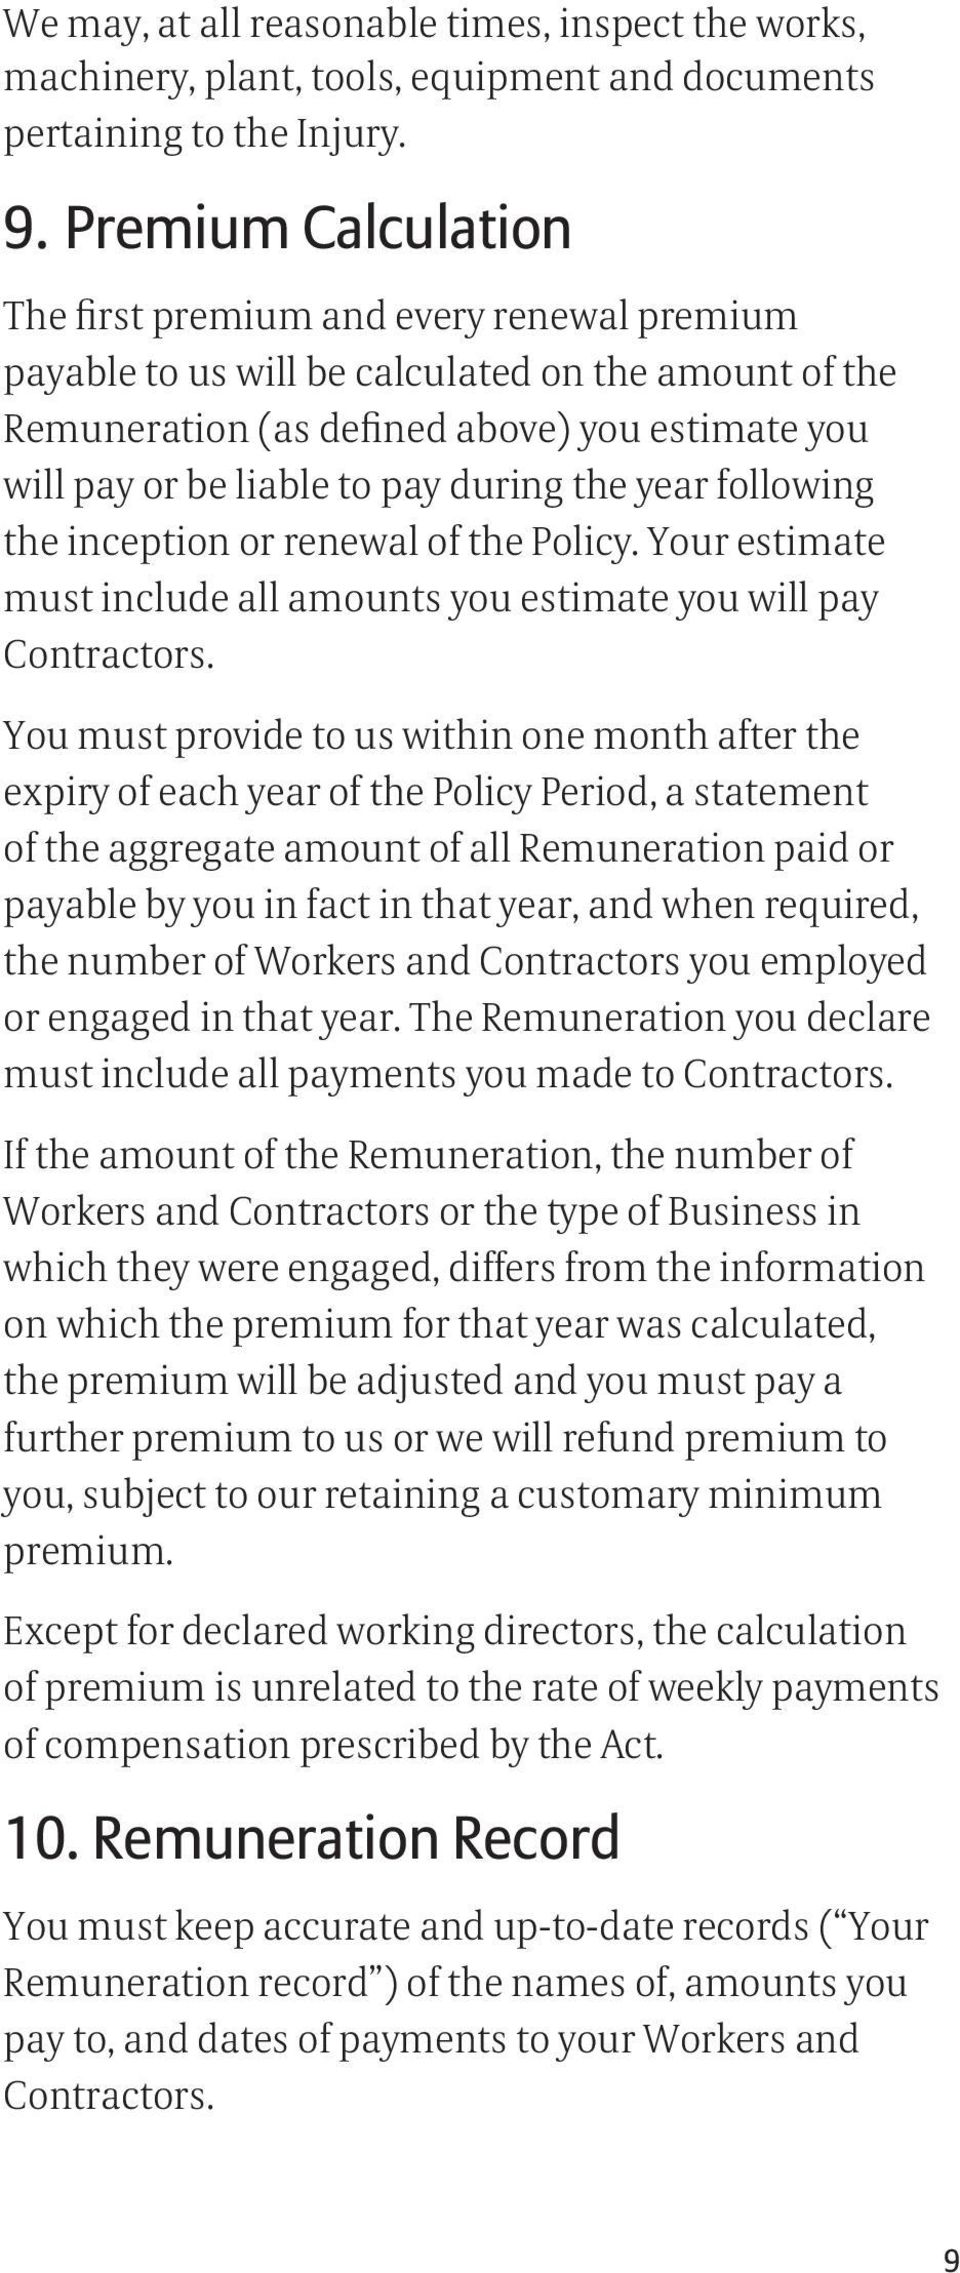 during the year following the inception or renewal of the Policy. Your estimate must include all amounts you estimate you will pay Contractors.